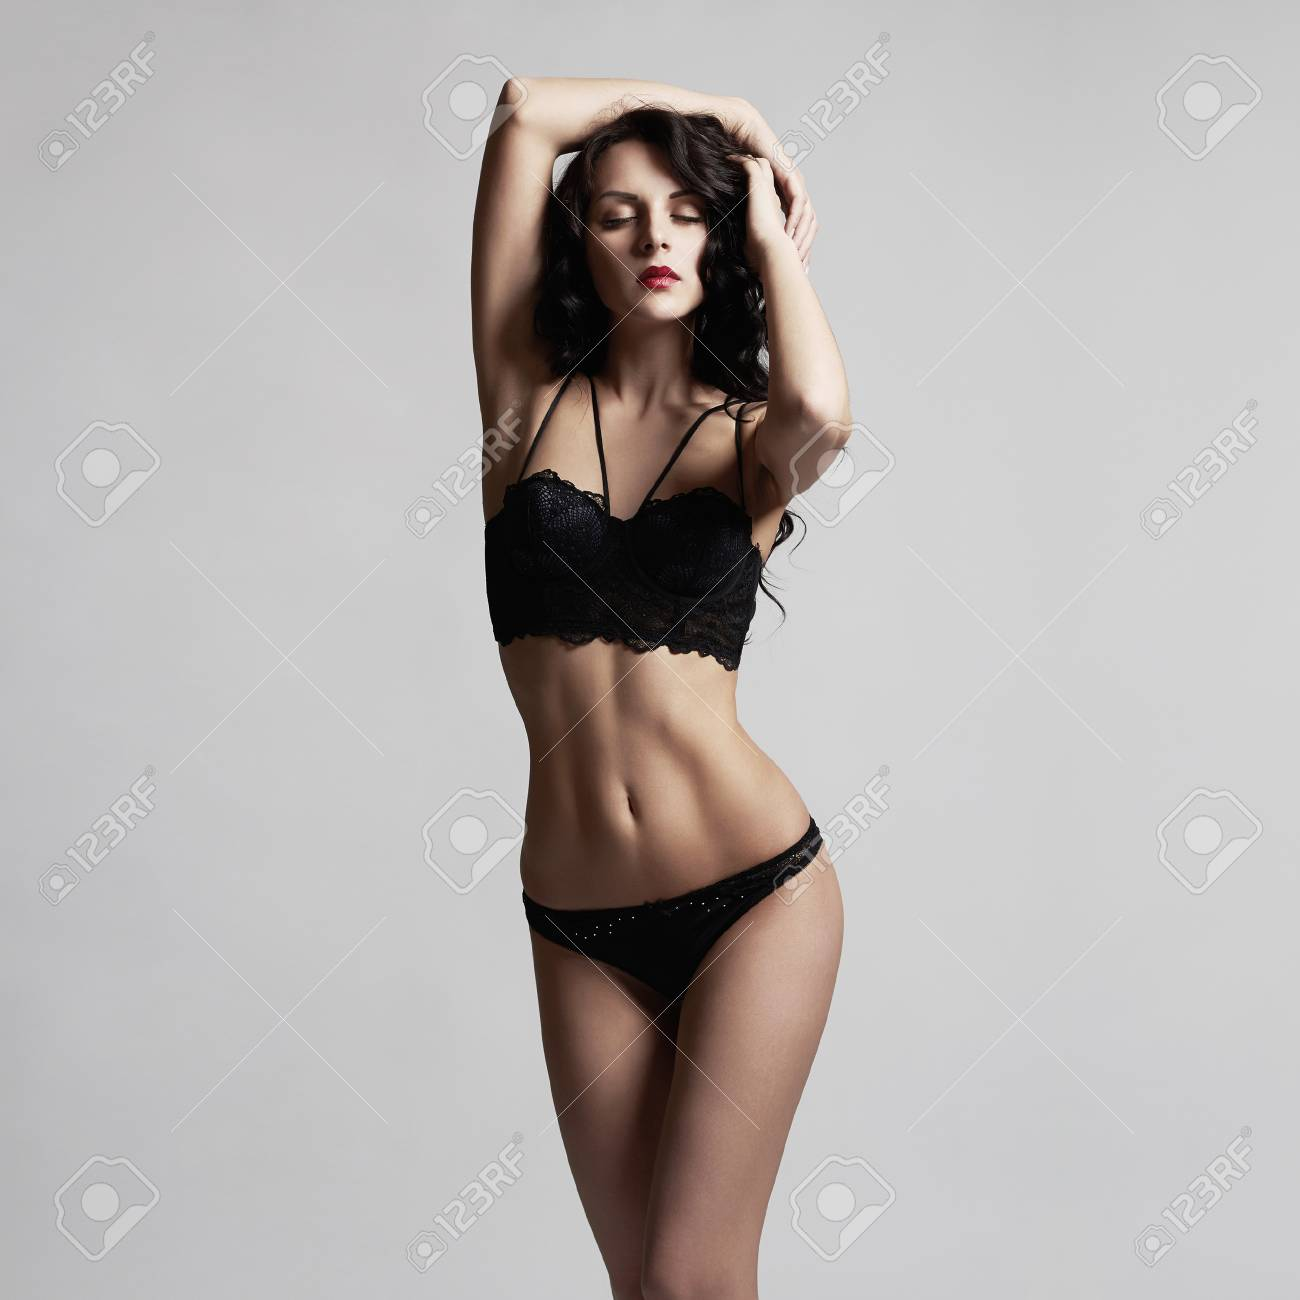 74cfefa7180a beautiful girl in lingerie. Sexy young woman in underwear Stock Photo -  70072963